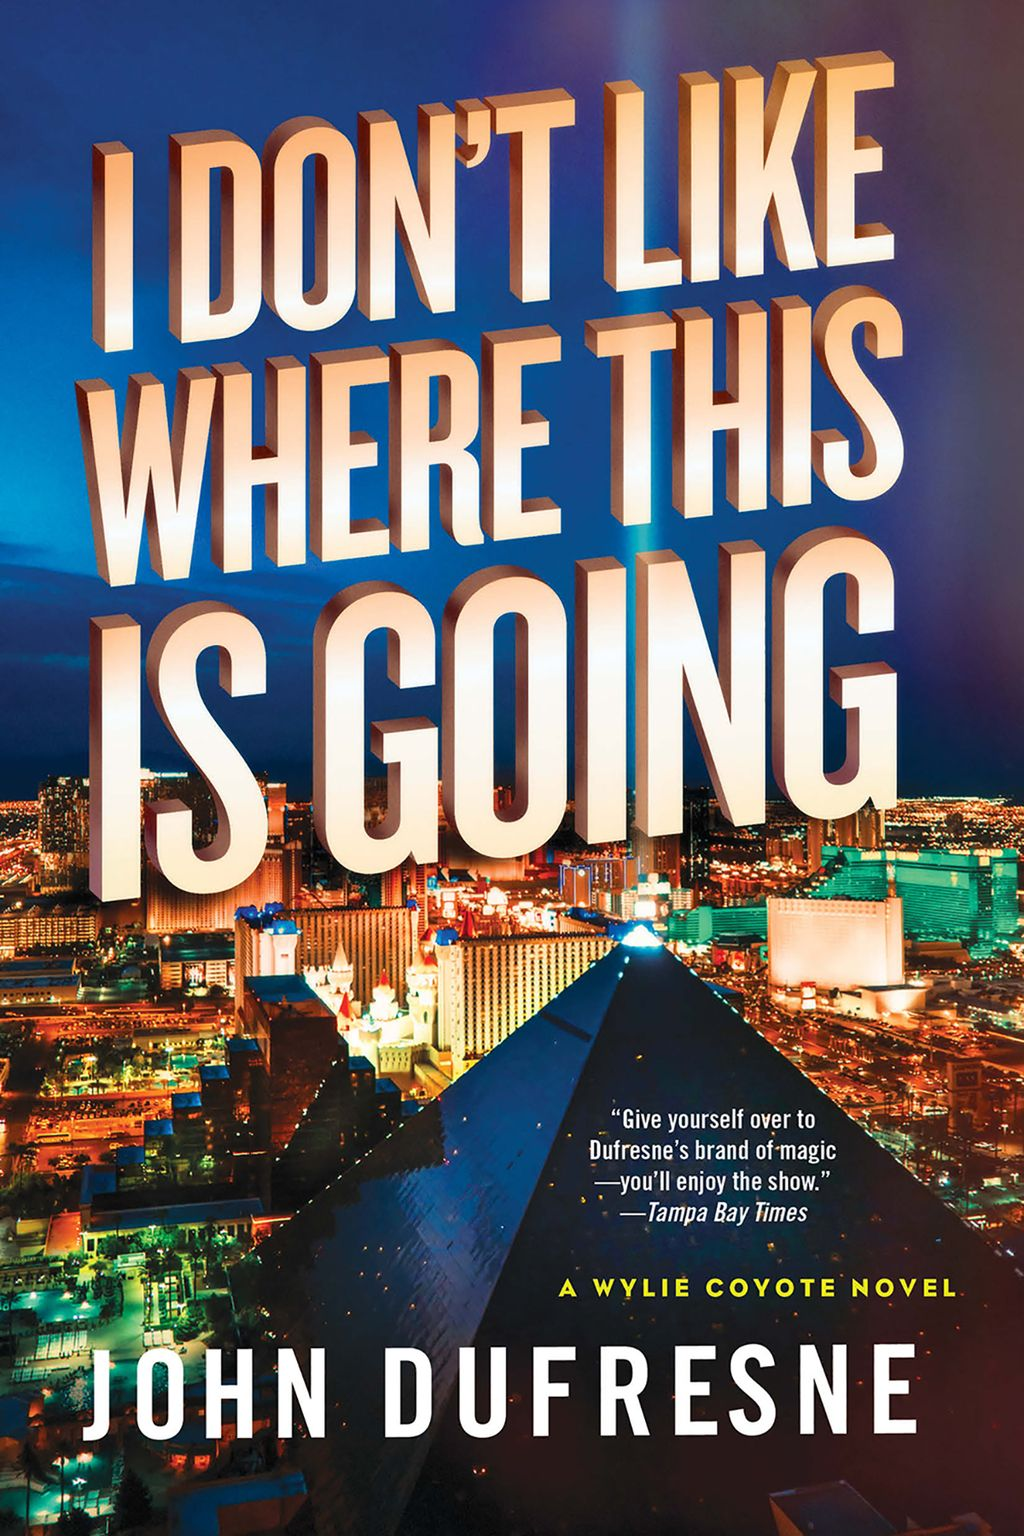 I Don T Like Where This Is Going A Wylie Coyote Novel Ebook Novels Wylie Coyote Books